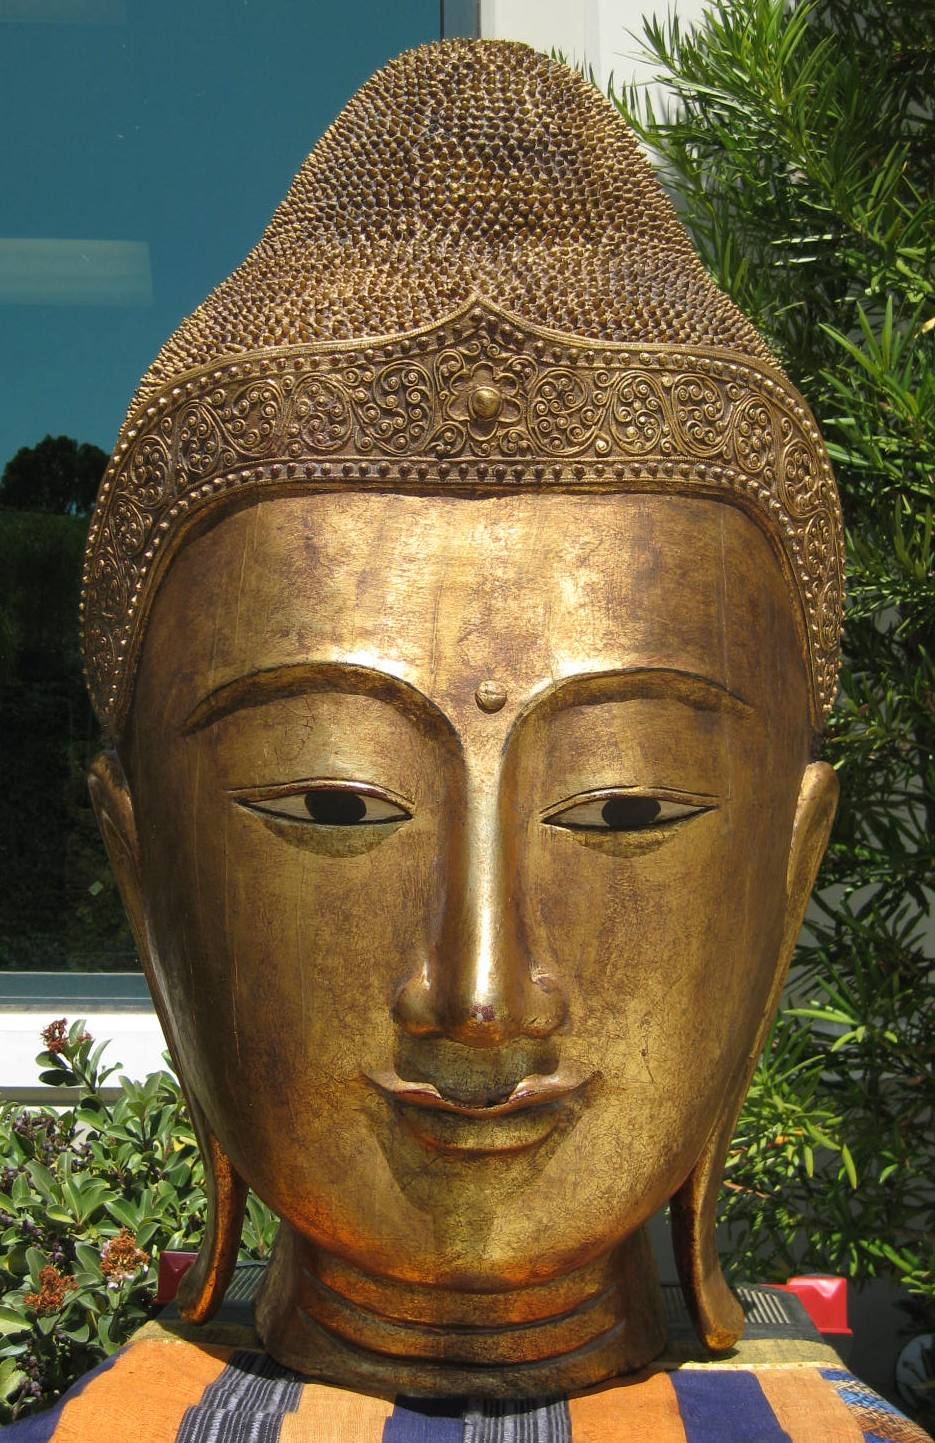 Larger than Life Size Half Buddha Head Gold LeafBuddha Head on Stand